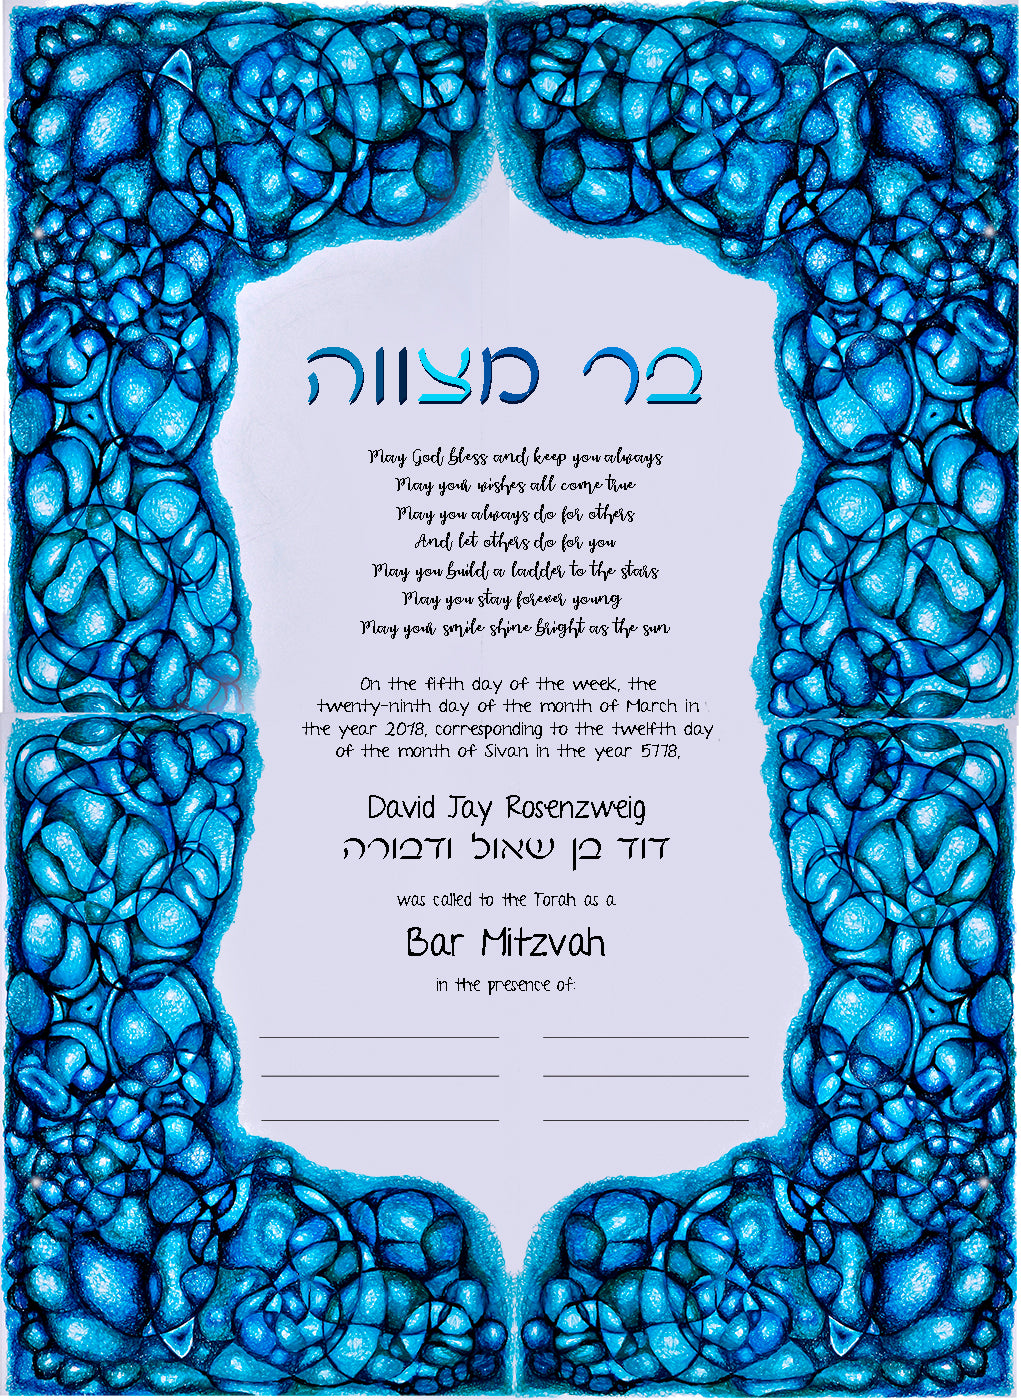 Blue Bat Mitzvah or Bar Mitzvah Certificate